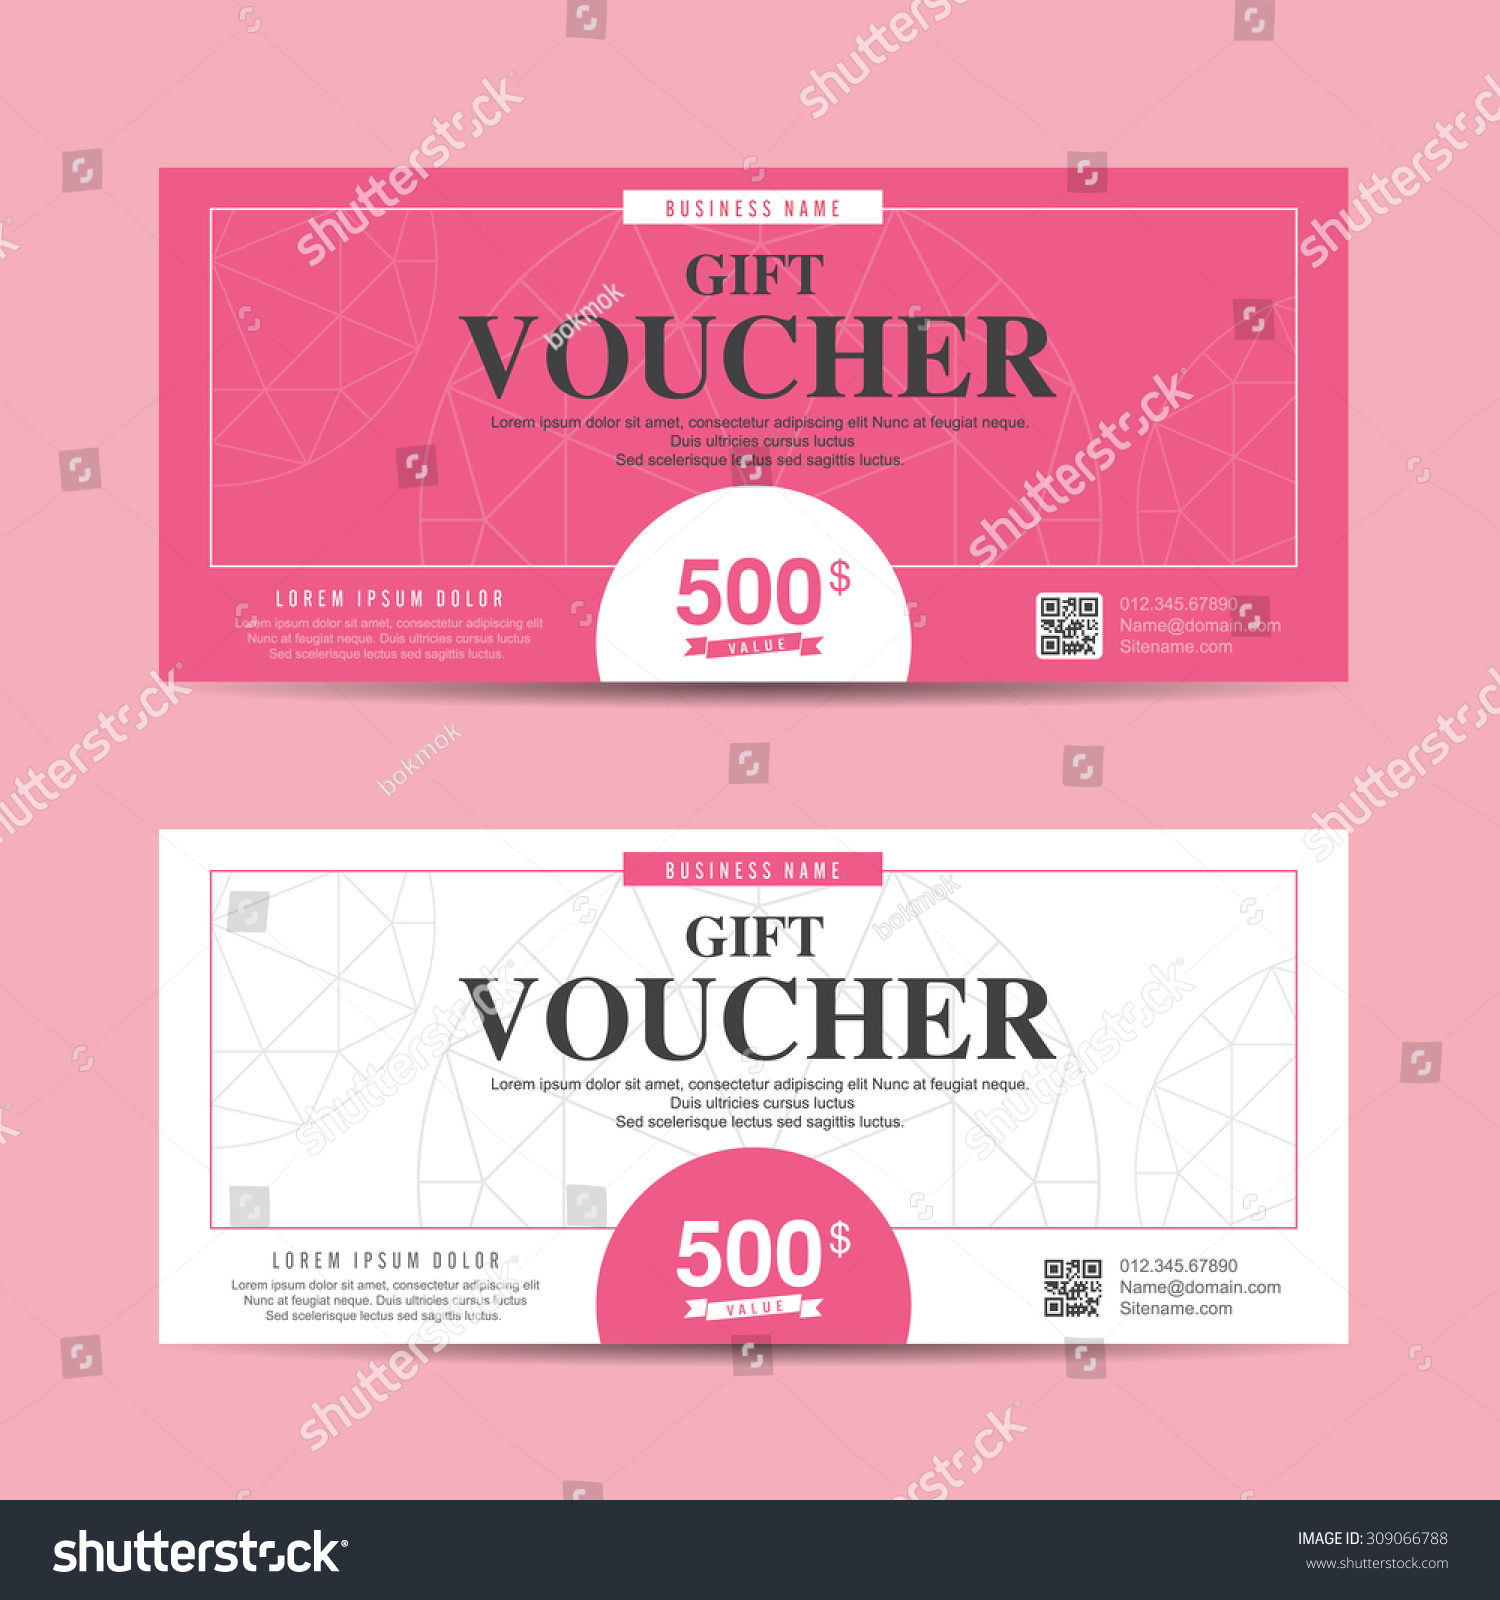 create a coupon template free - vector illustration gift voucher template with colorful